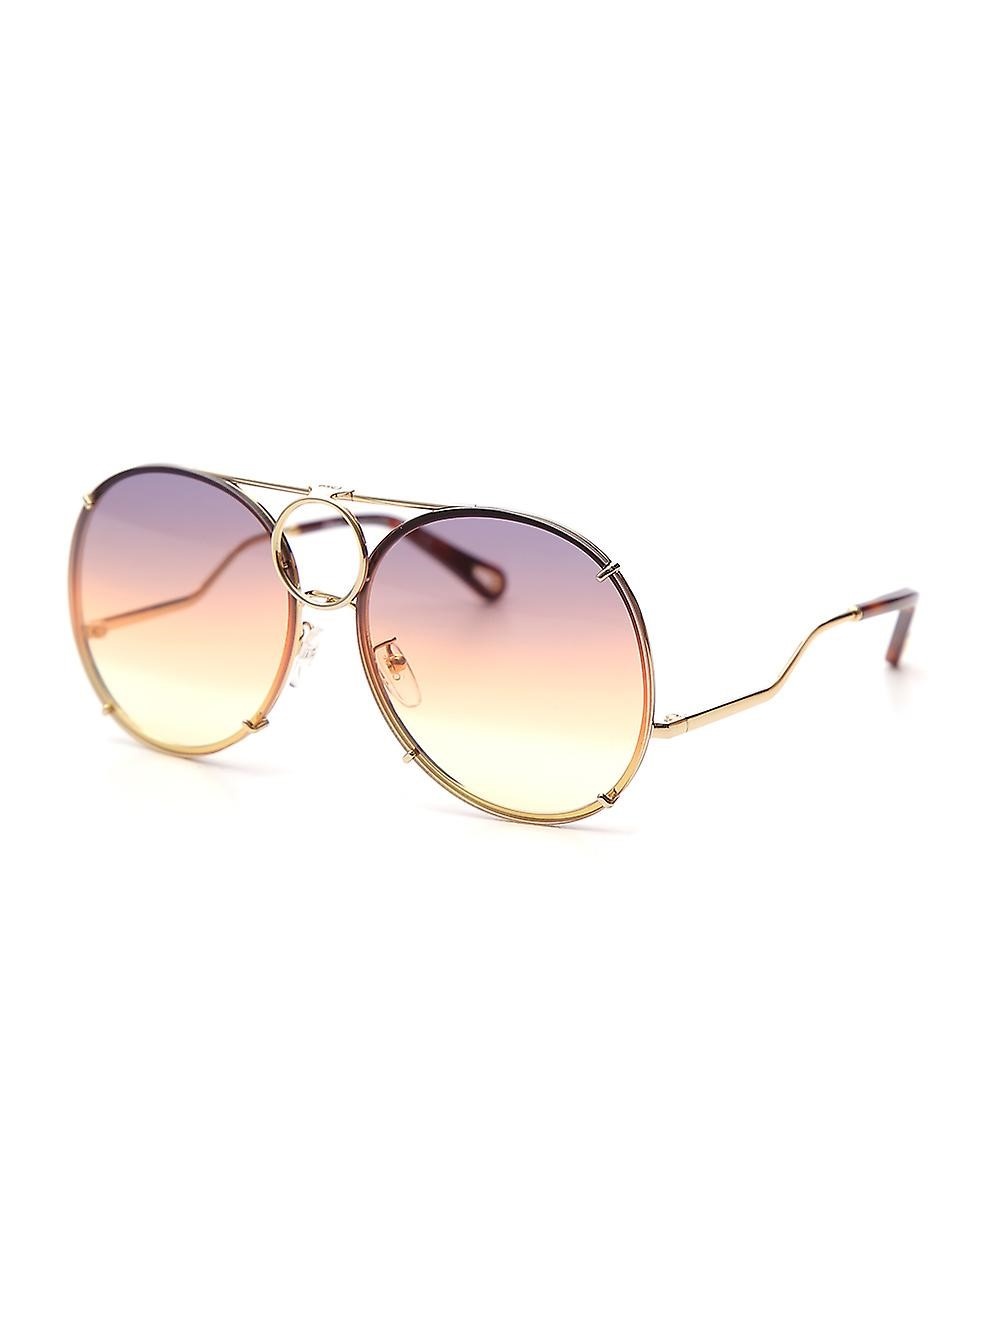 Vicky Sunglasses £325, Eyesite Opticians